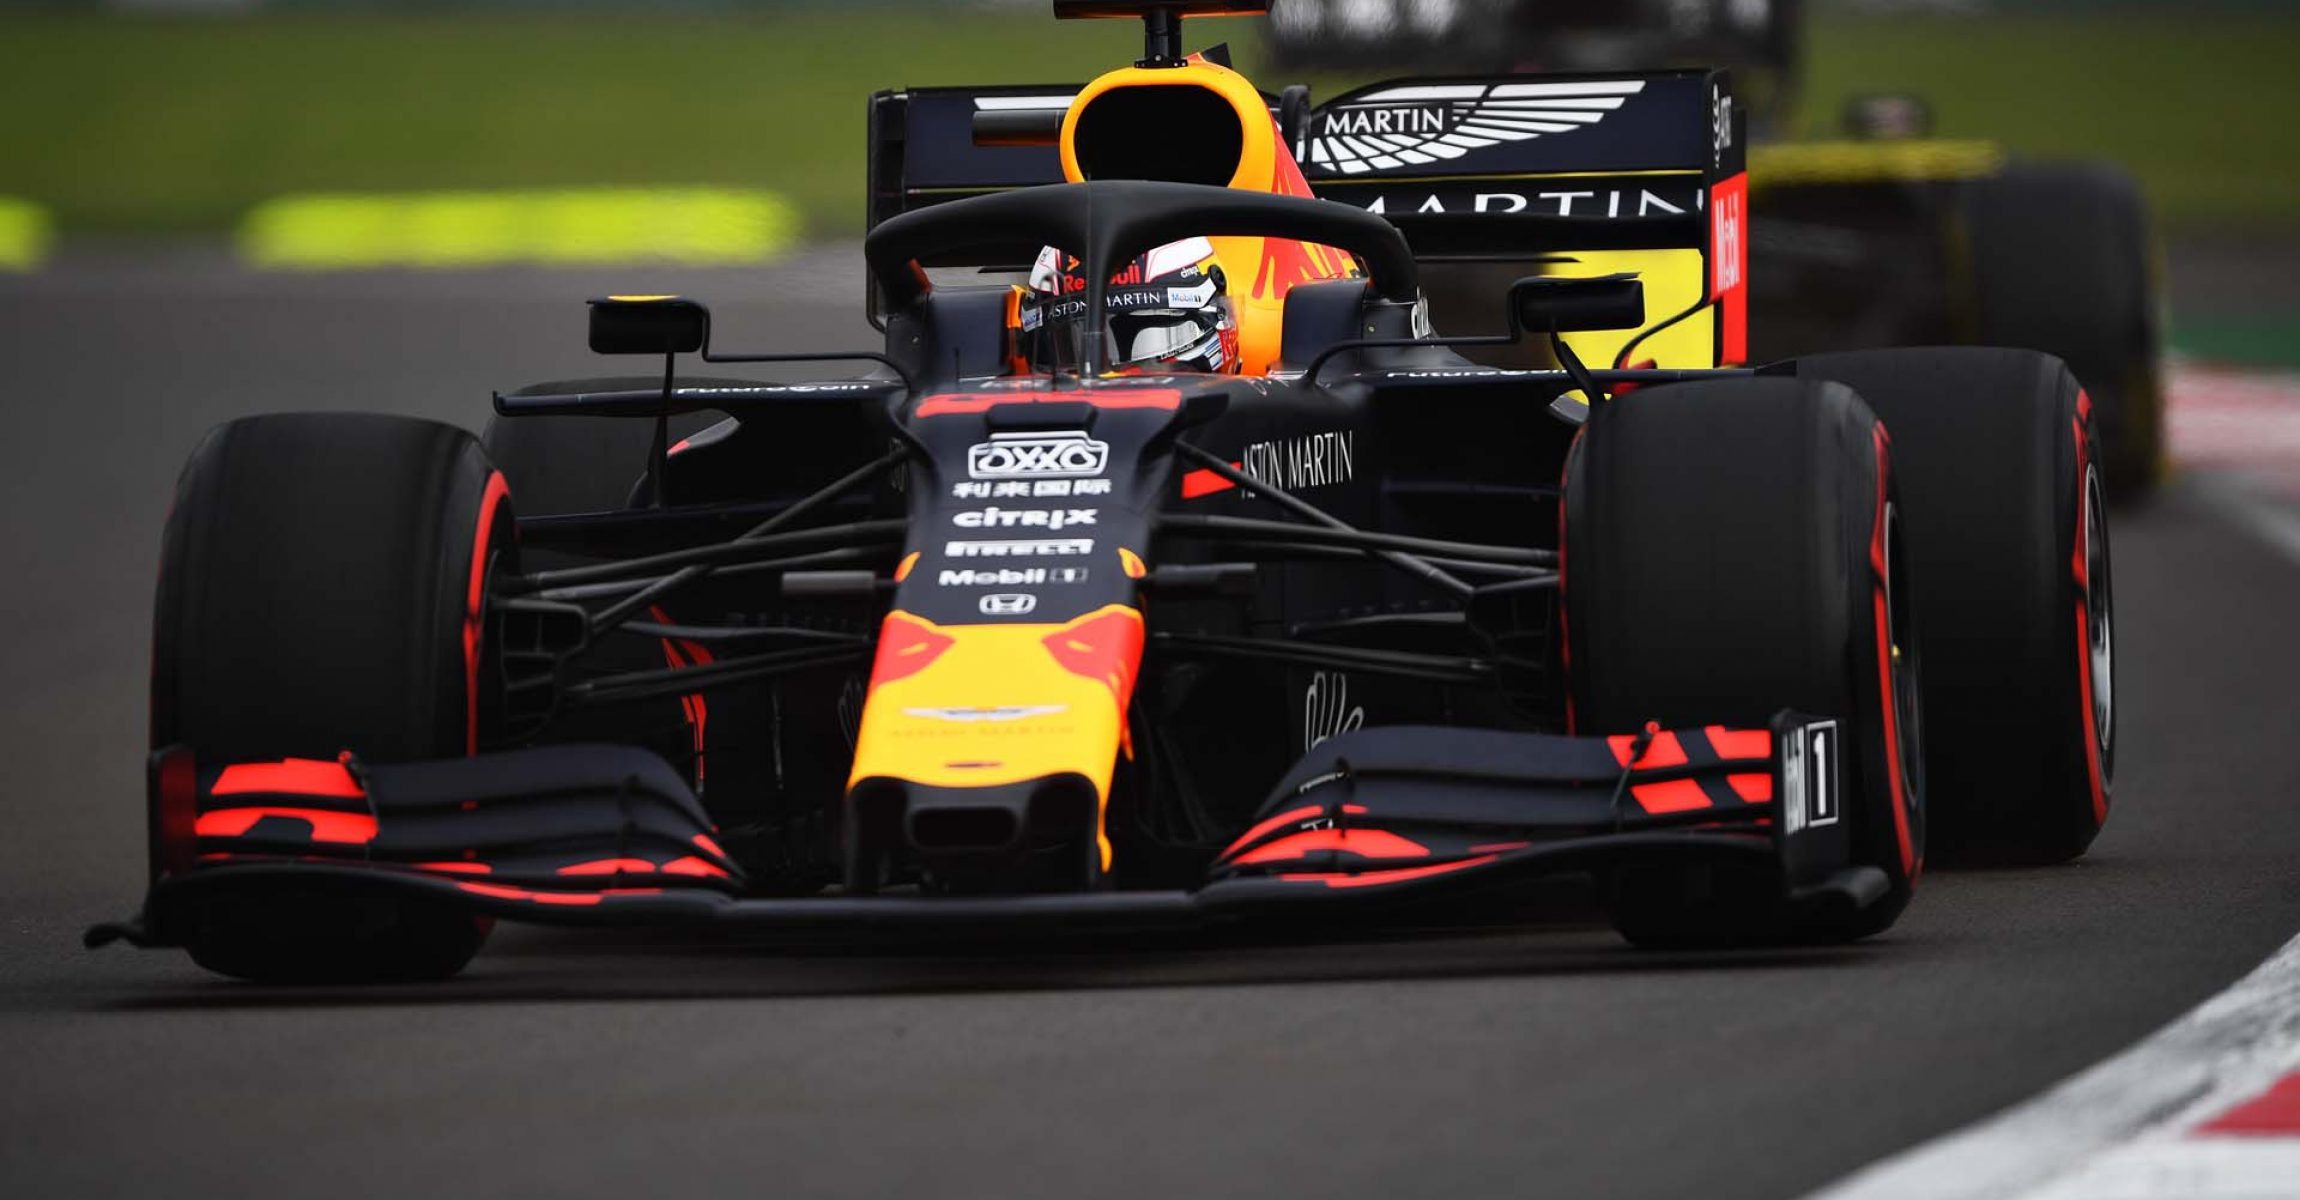 MEXICO CITY, MEXICO - OCTOBER 25: Max Verstappen of the Netherlands driving the (33) Aston Martin Red Bull Racing RB15 on track during practice for the F1 Grand Prix of Mexico at Autodromo Hermanos Rodriguez on October 25, 2019 in Mexico City, Mexico. (Photo by Clive Mason/Getty Images) // Getty Images / Red Bull Content Pool // AP-21YZNBSF12111 // Usage for editorial use only //